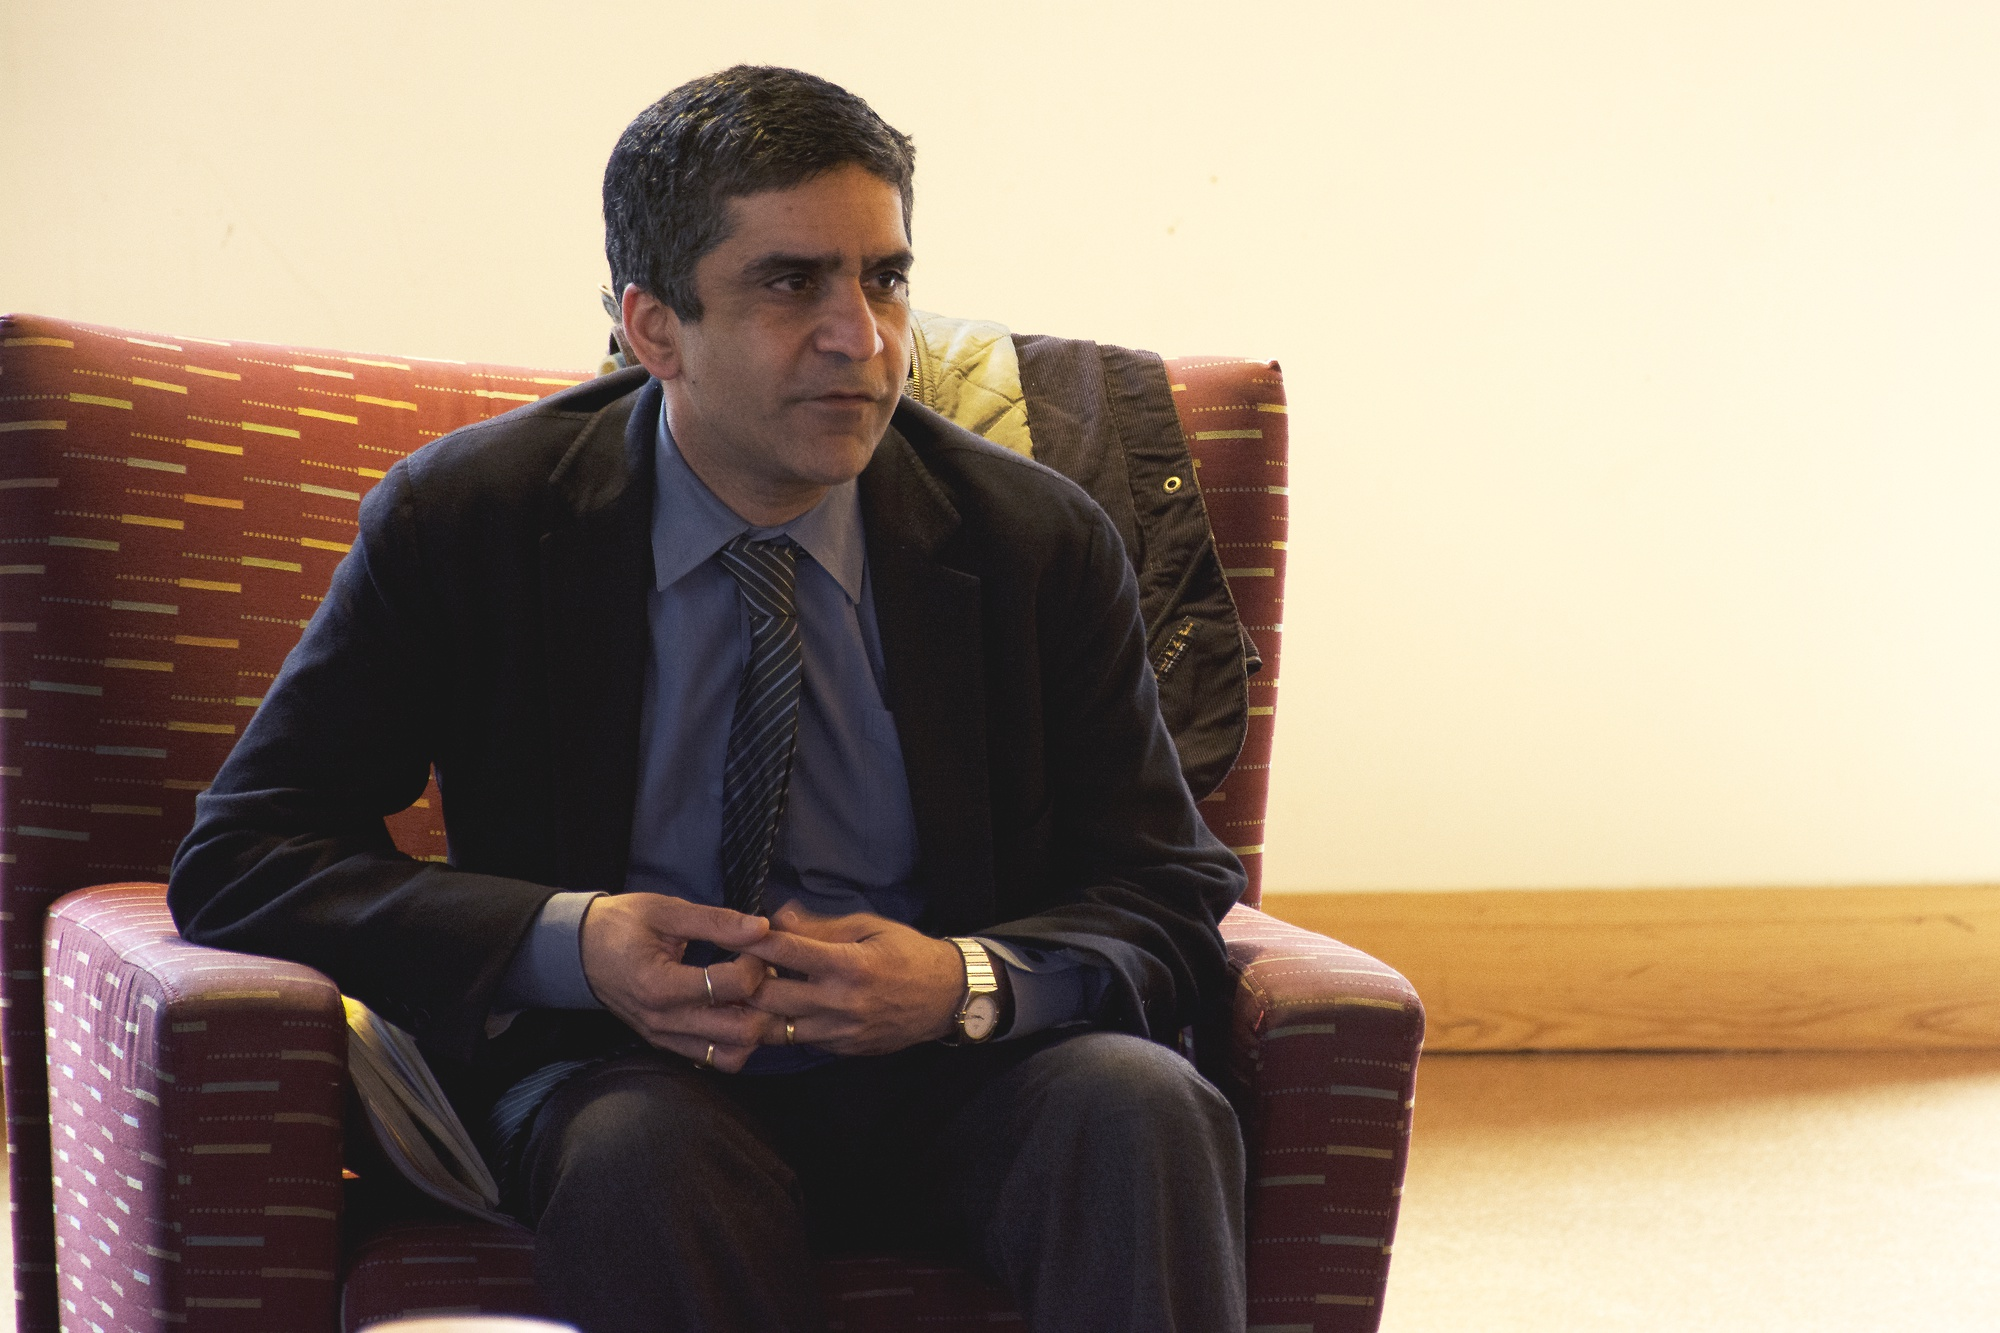 Dean Khurana explains the relevance of a liberal arts education to our modern society. Last Friday, the Dean of the College held a town hall at Boylston Hall in order to discuss with students the issues facing Harvard today.